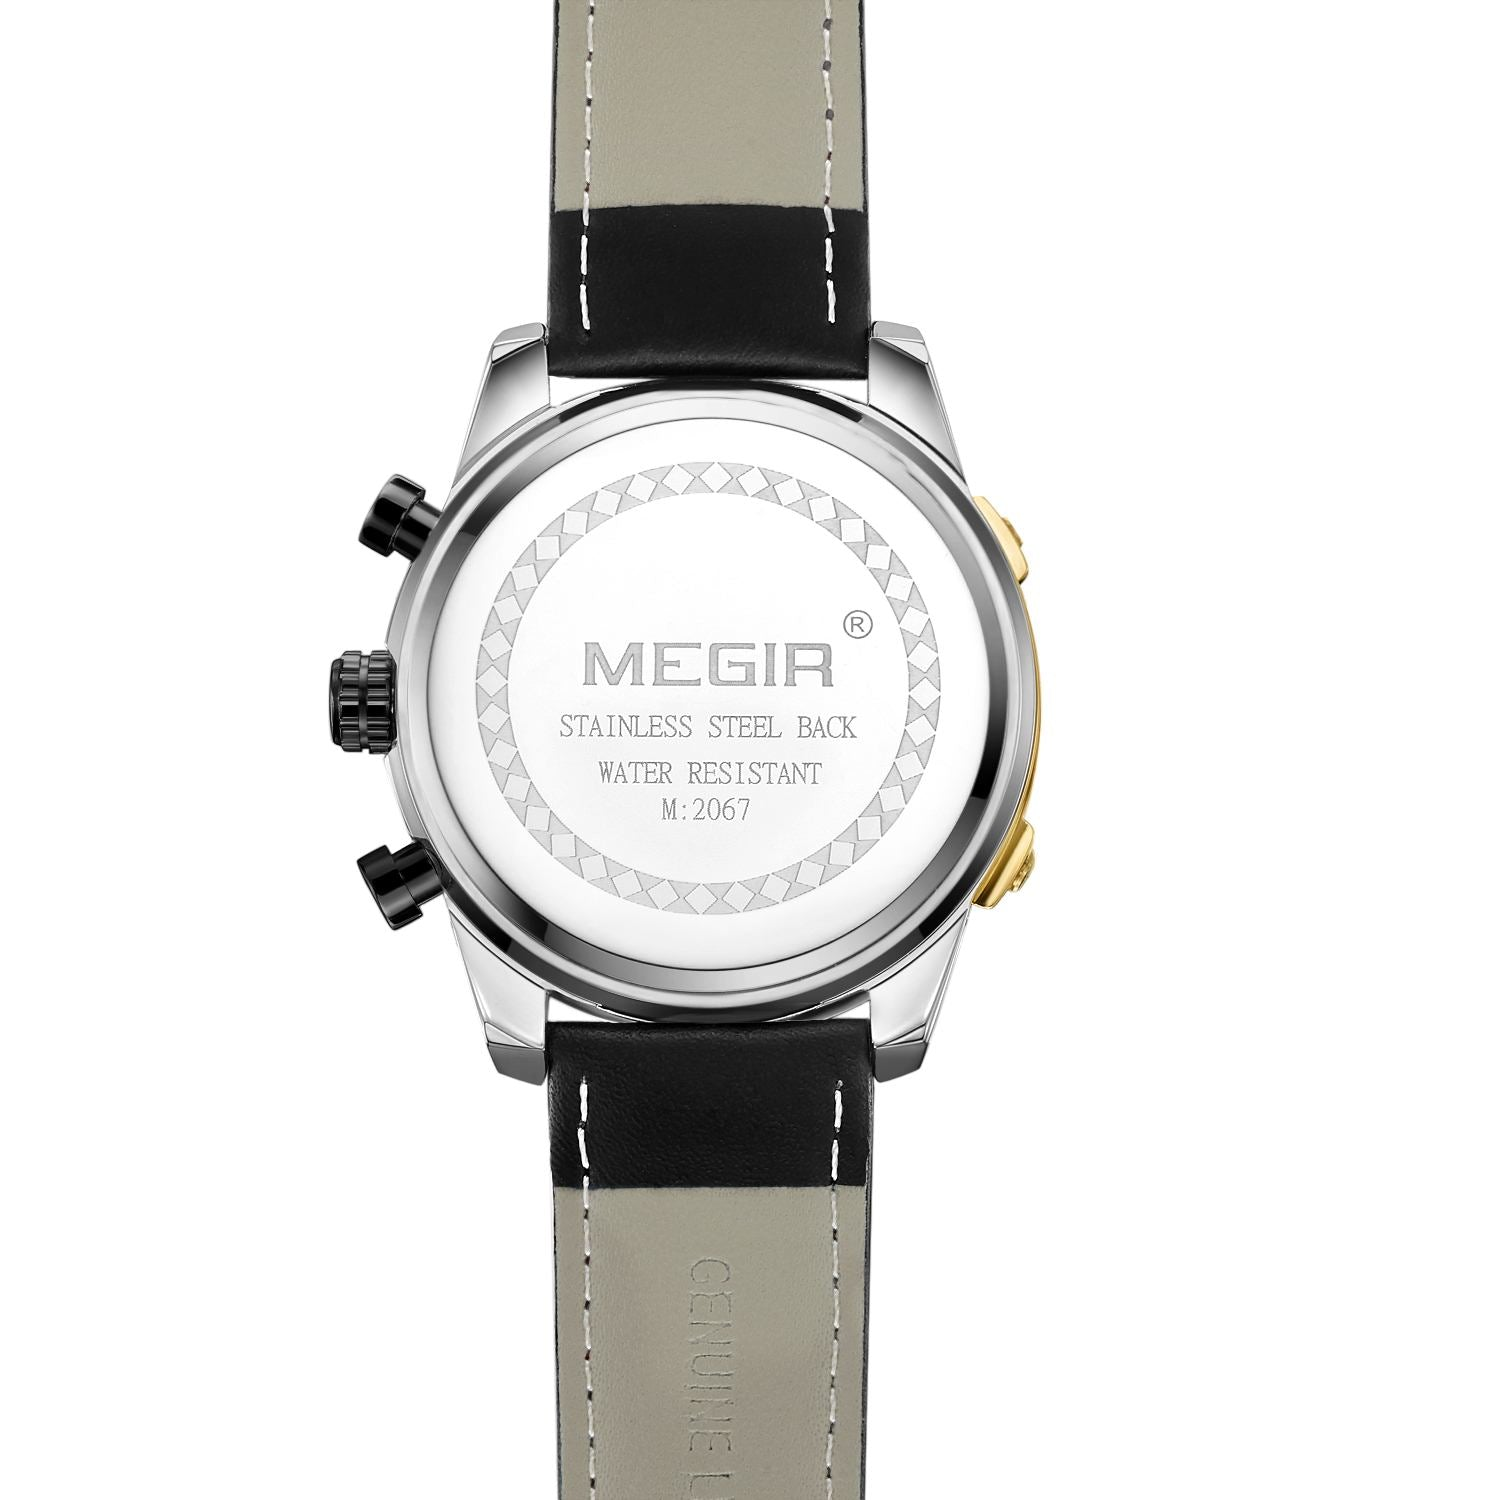 MEGIR men's chronograph sports watch 2067 - MEGIR